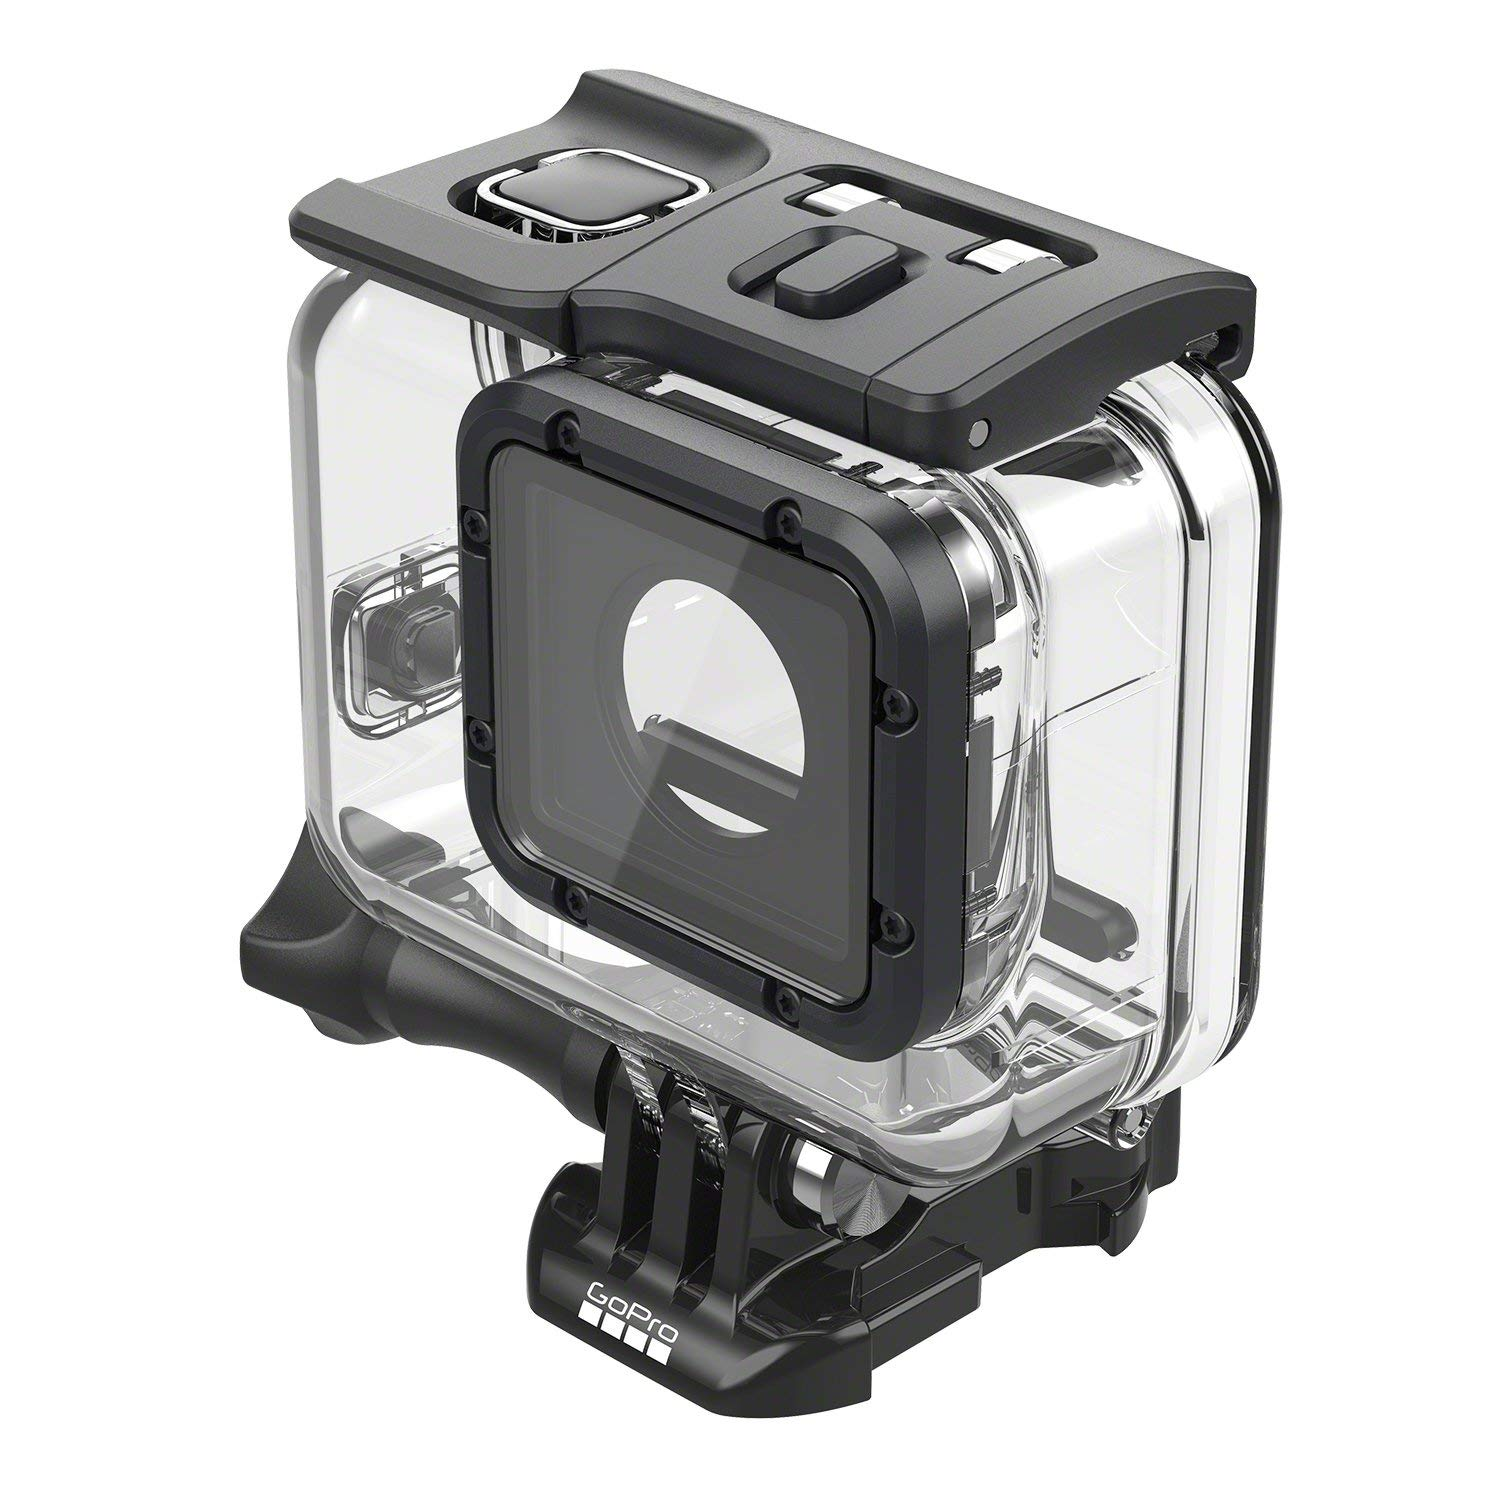 GoPro Super Suit (Über Protection) with Dive Housing for HERO5 Black (Certified Refurbished)